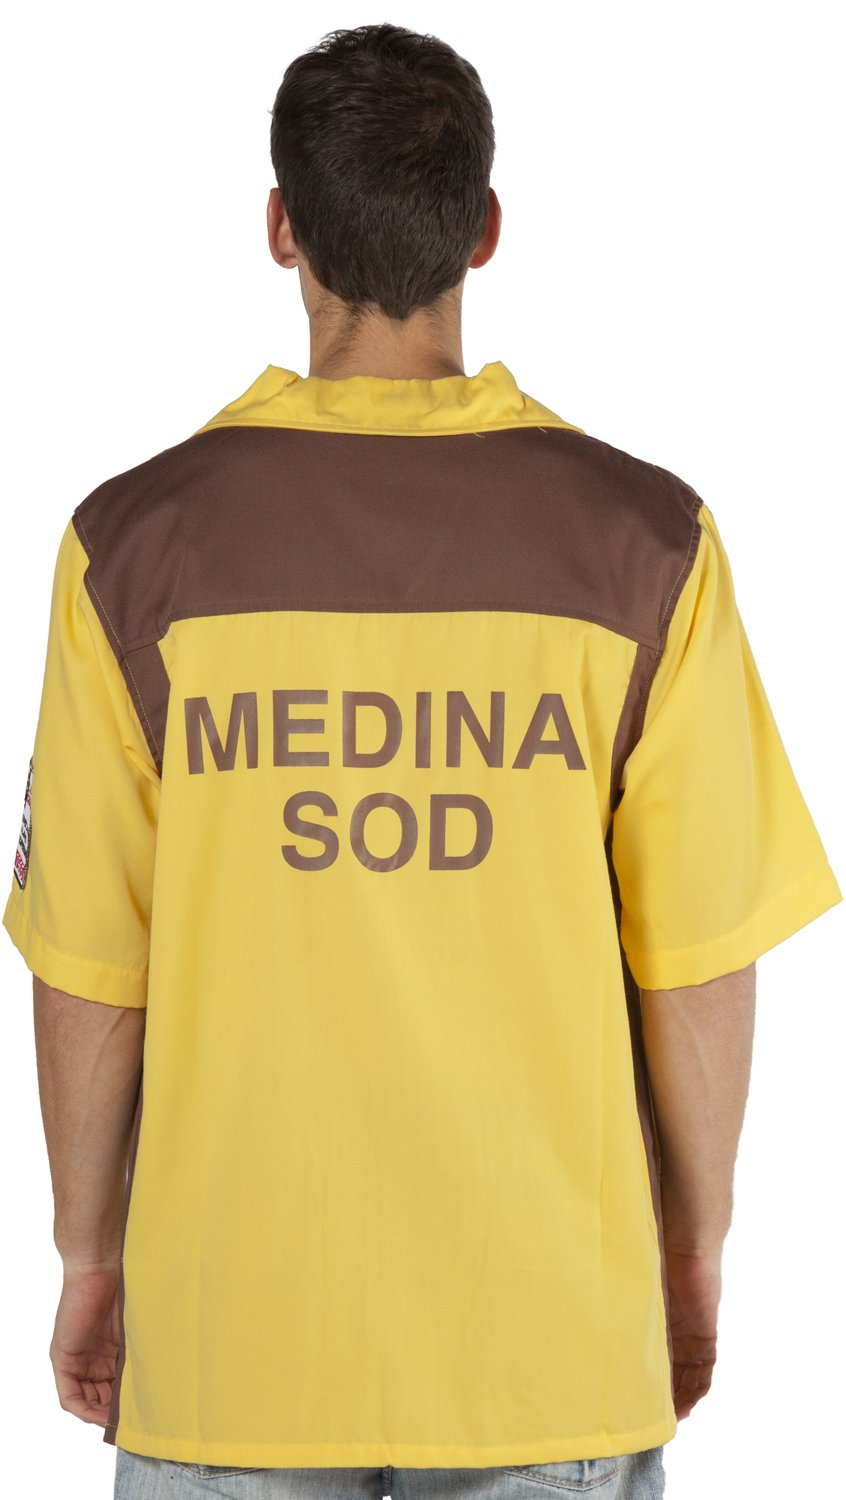 The Big Lebowski - Medina Sod Bowling Jersey - Medium by Ripple Junction (Image #1)